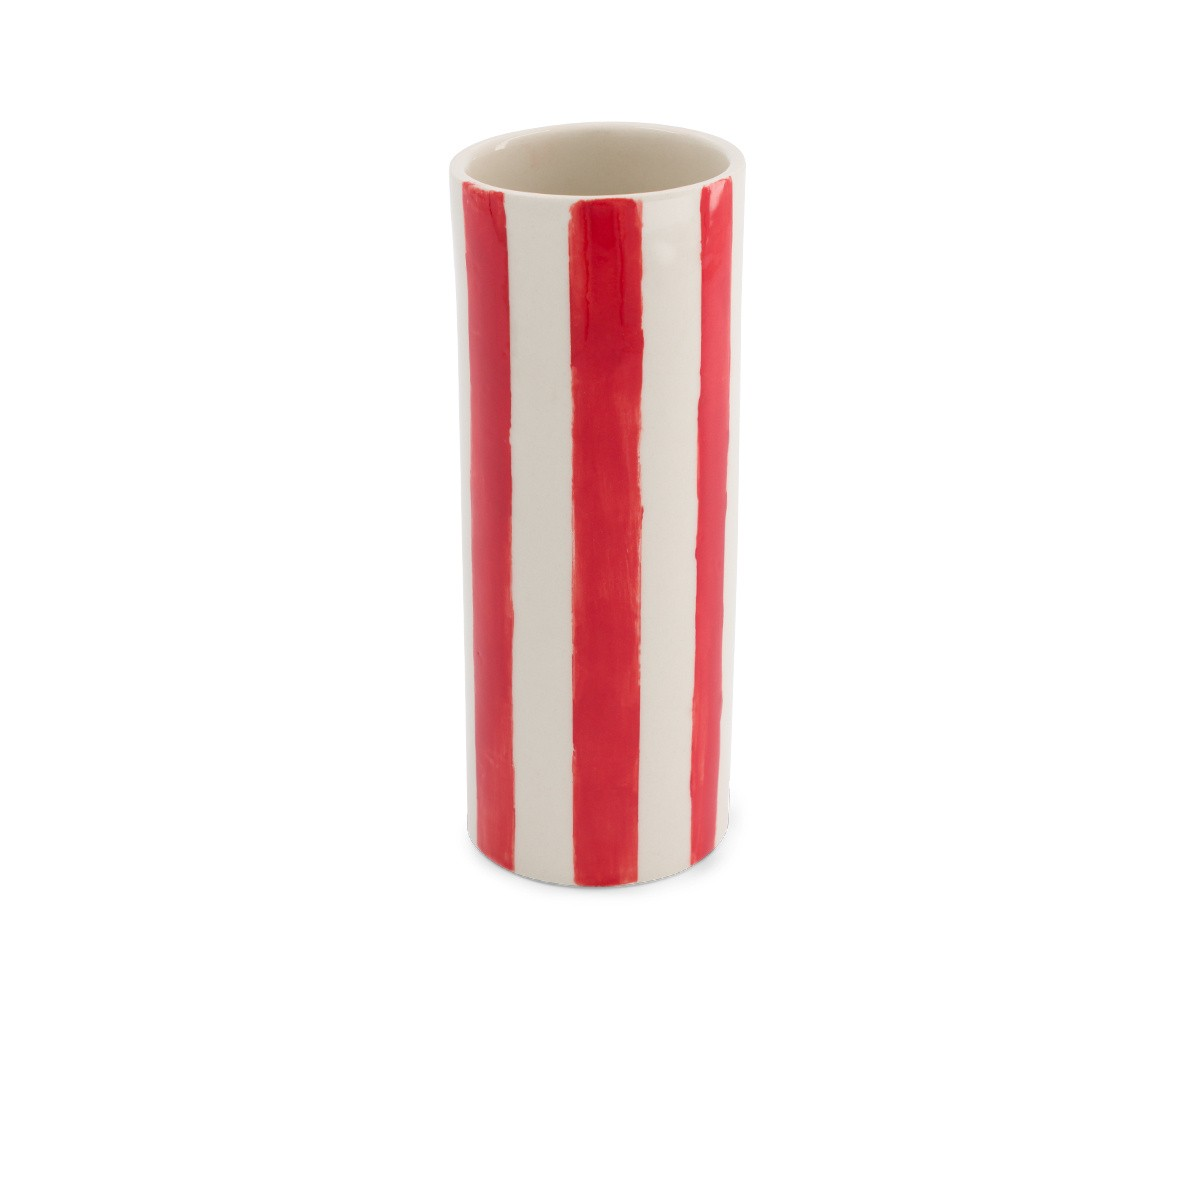 Pot Domino grand modèle motif rouge